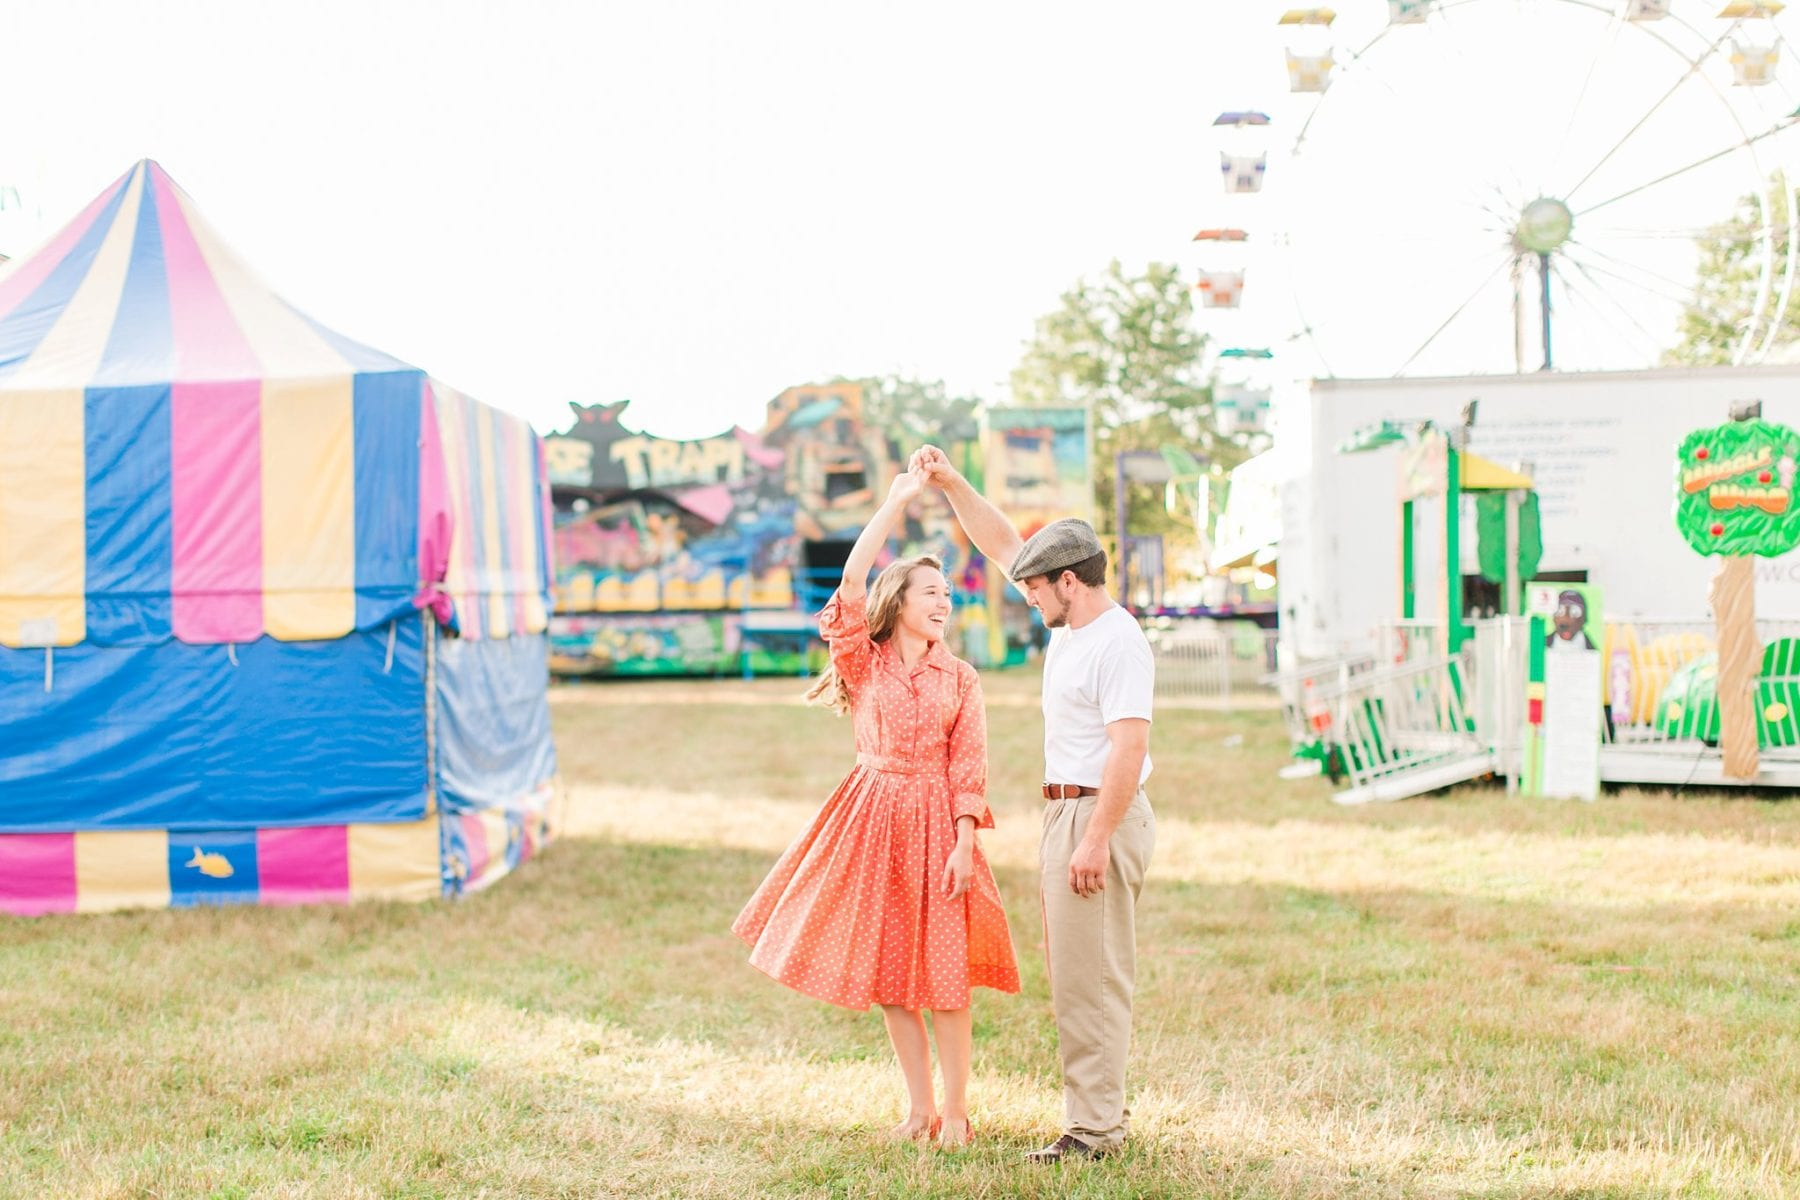 County Fair Engagement Photos Virginia Wedding Photographer Megan Kelsey Photography Samantha & Charles-145.JPG